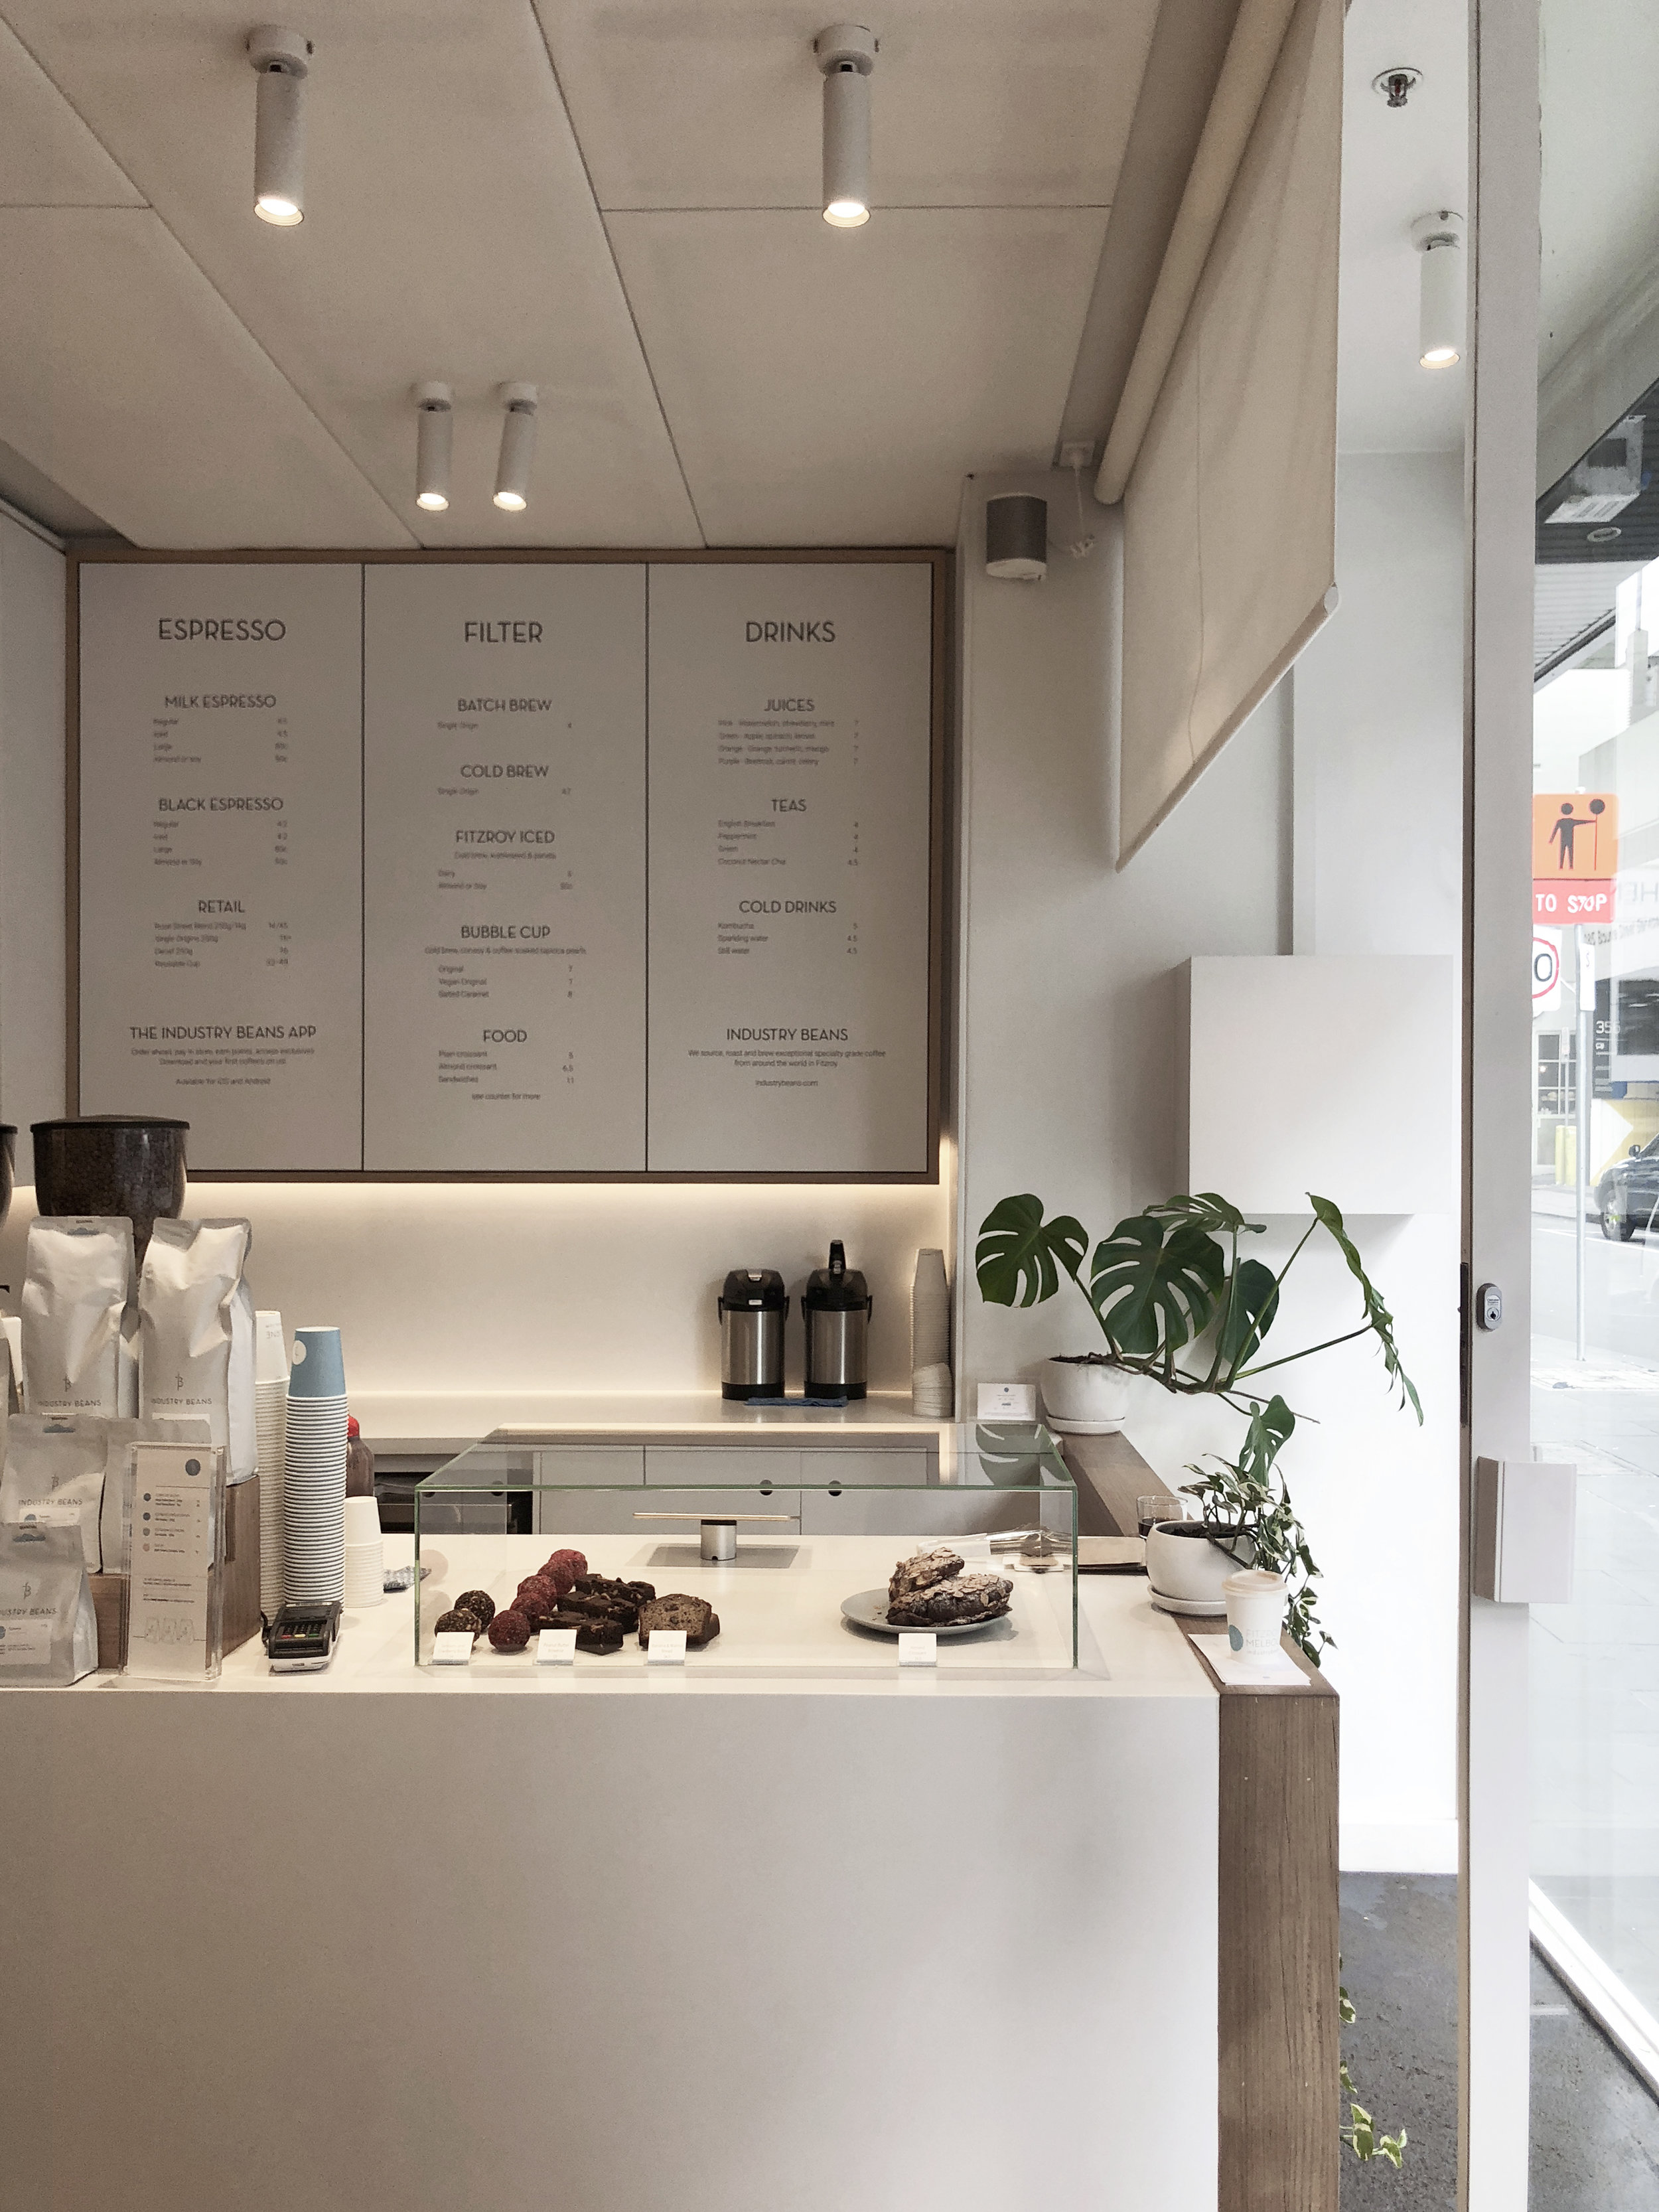 I N D U S T R Y B E A N S /  Industry Beans Lt. Collins  sometimes you just need a white breathing space 🌬 minimal coffee shop design at industry beans lt. Collins's right inside Melbourne's CBD area. A tiny but cosy space for all coffee lovers.  📍345 Little Collins St, Melbourne VIC 3000